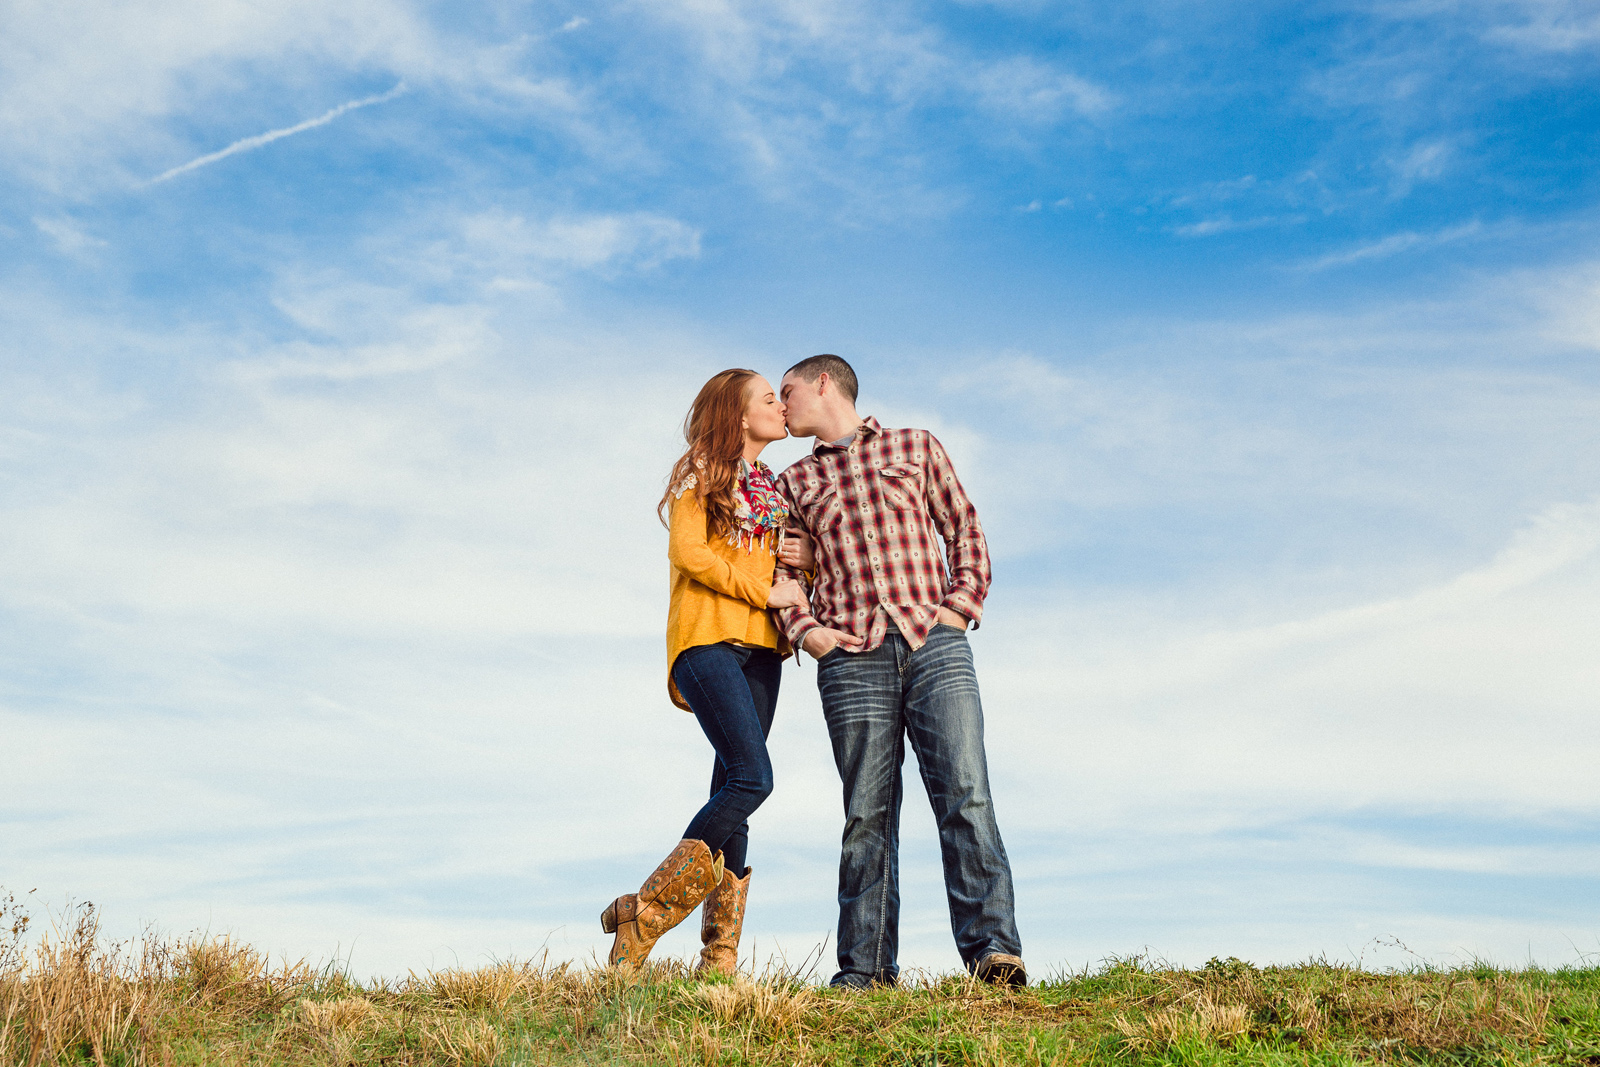 Oldani-Photography-St-Charles-August-A-Busch-Memorial-Area-Engagement-Session-engagement-photos_20141128_160320-2.jpg